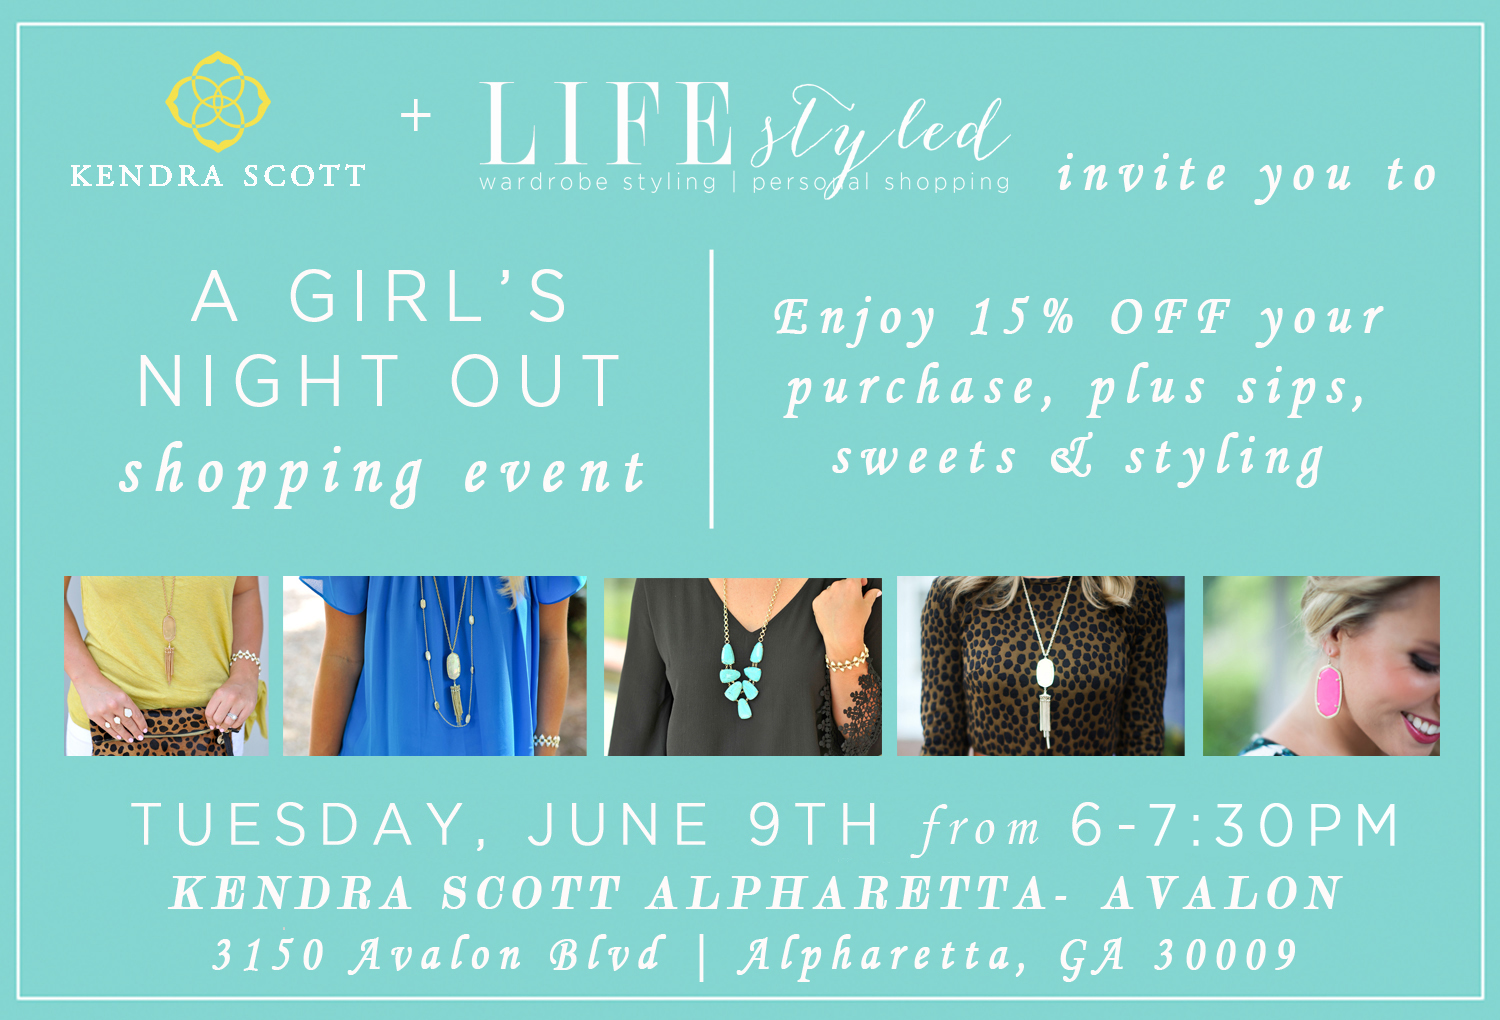 kendra scott event.jpg